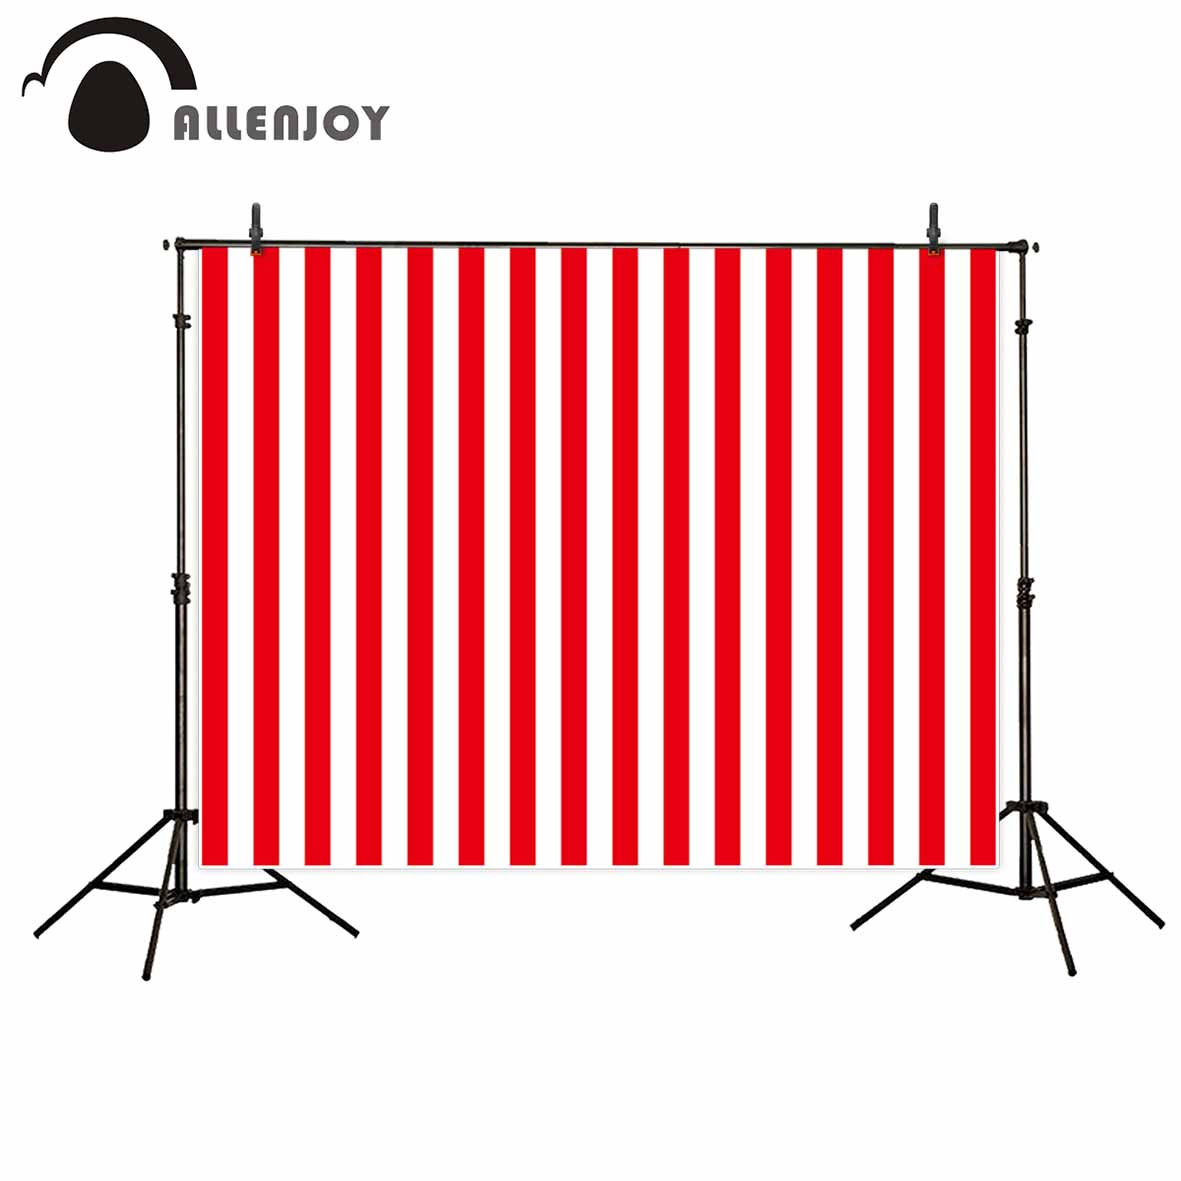 Allenjoy vinyl photographic background Red white stripes sexy passion Photographic background for study Photo background